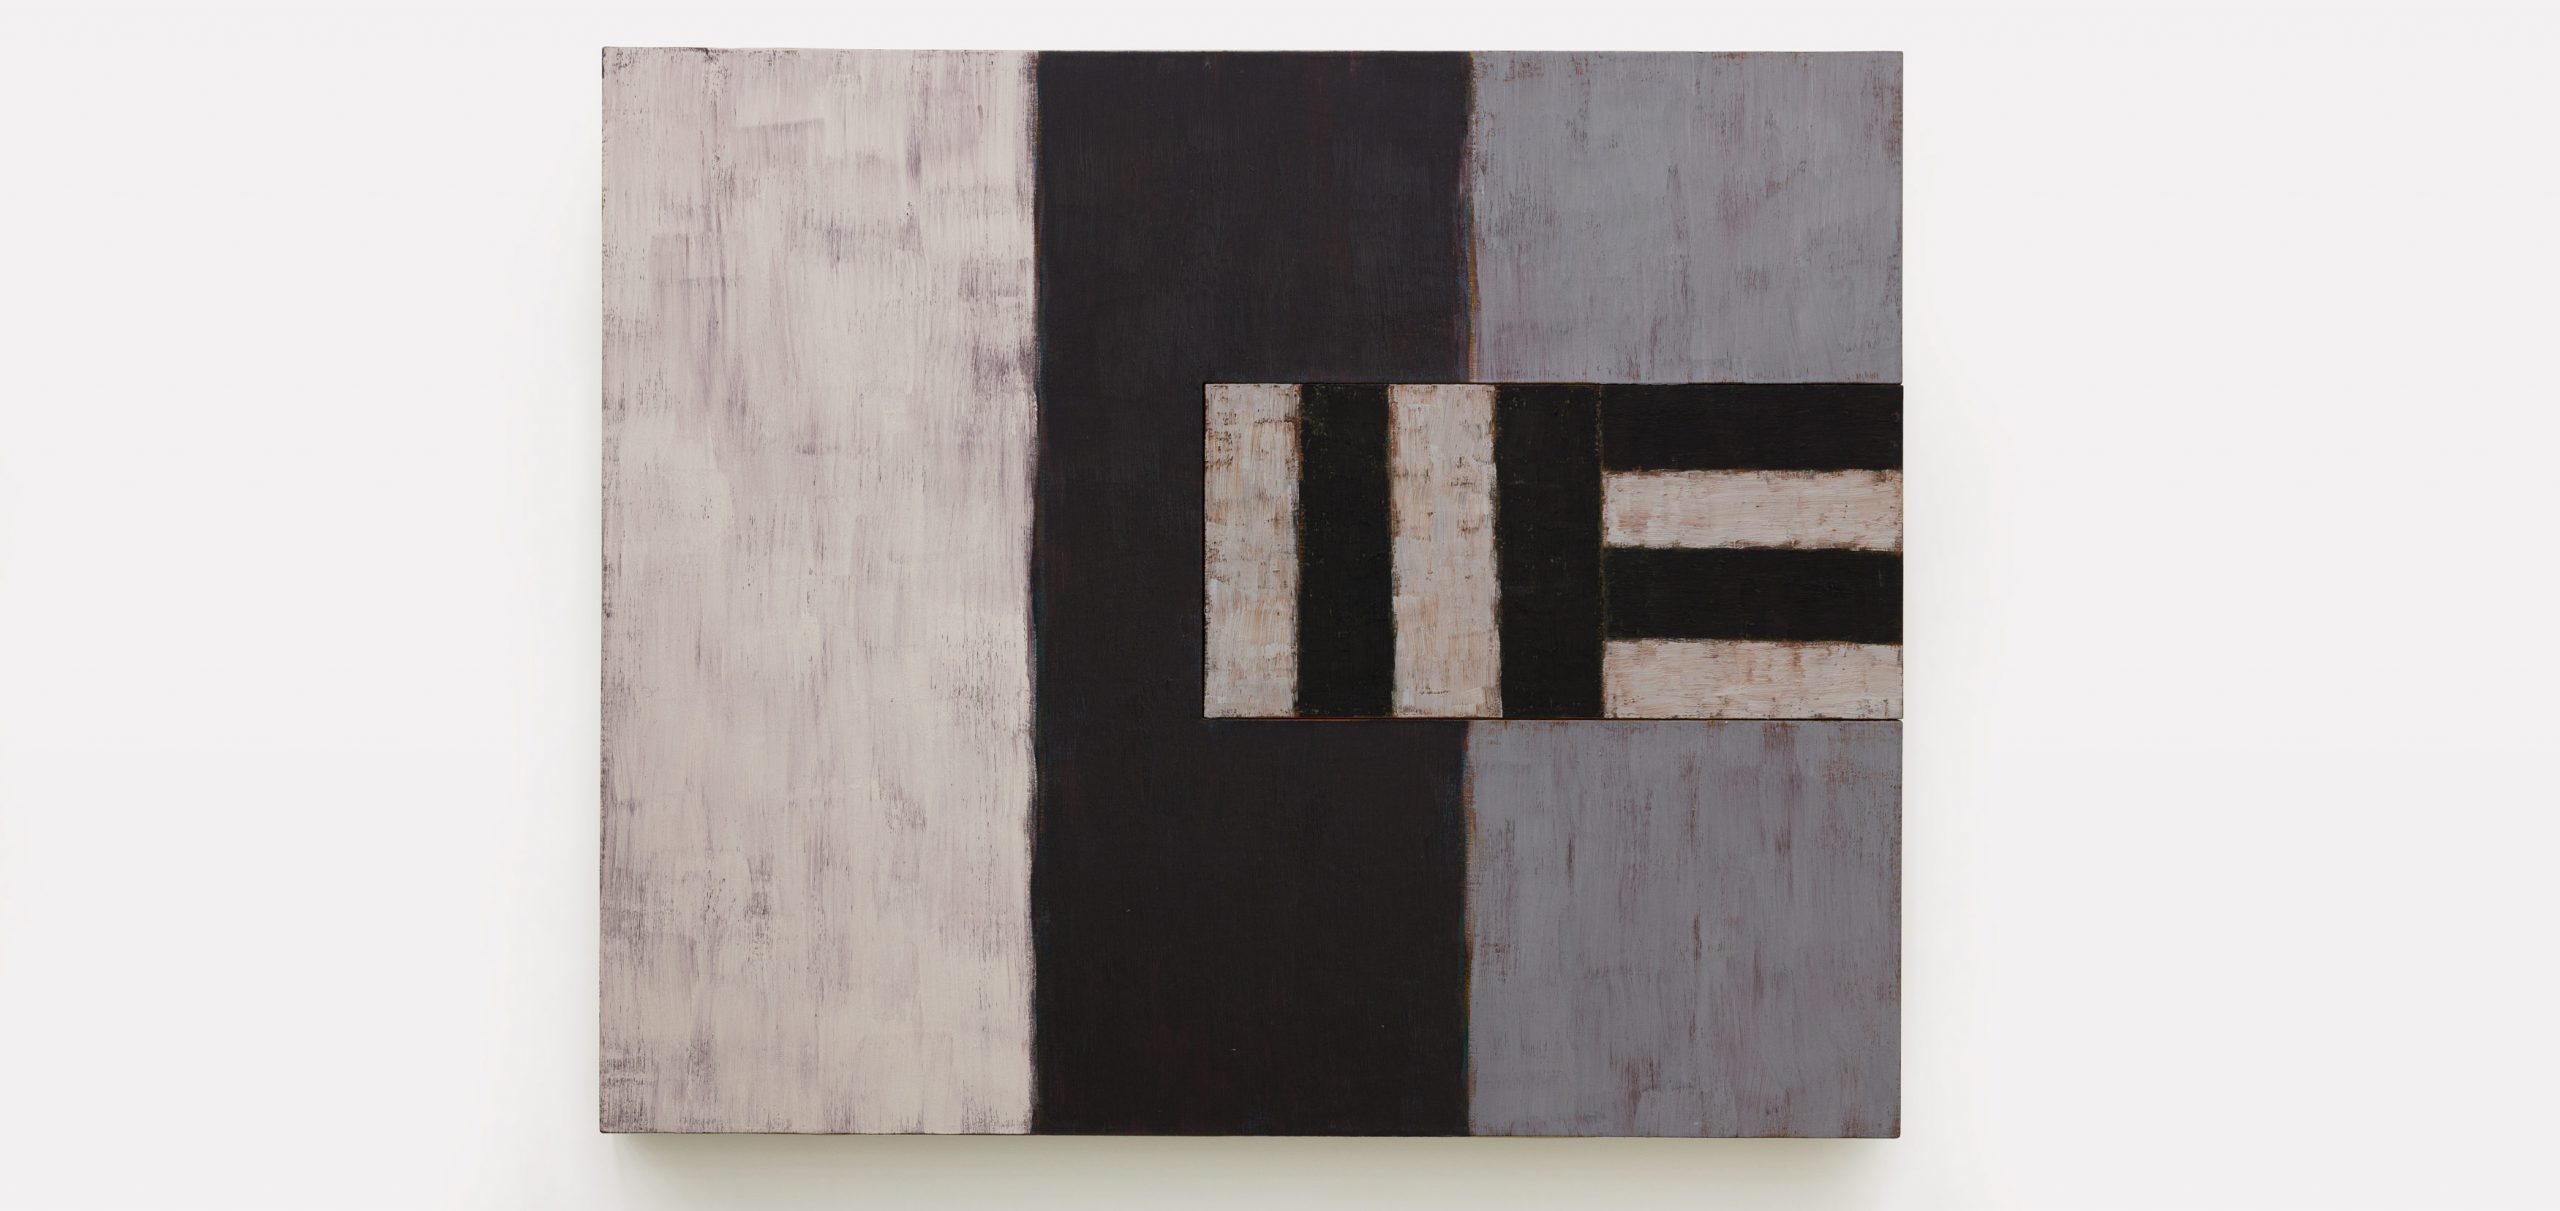 Counting Sean Scully